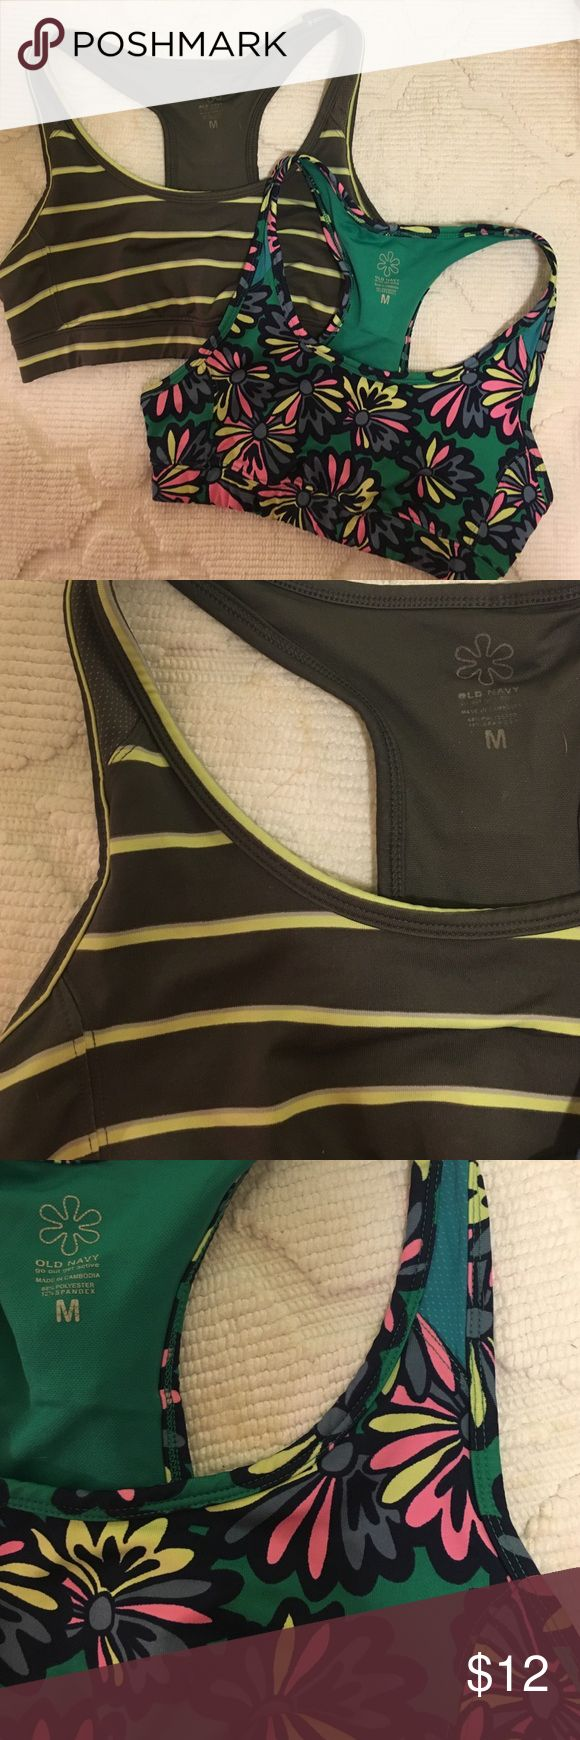 Lot of 2 Old Navy Sports Bras 2 Old Navy Sports Bras. Good condition. No padding Old Navy Intimates & Sleepwear Bras